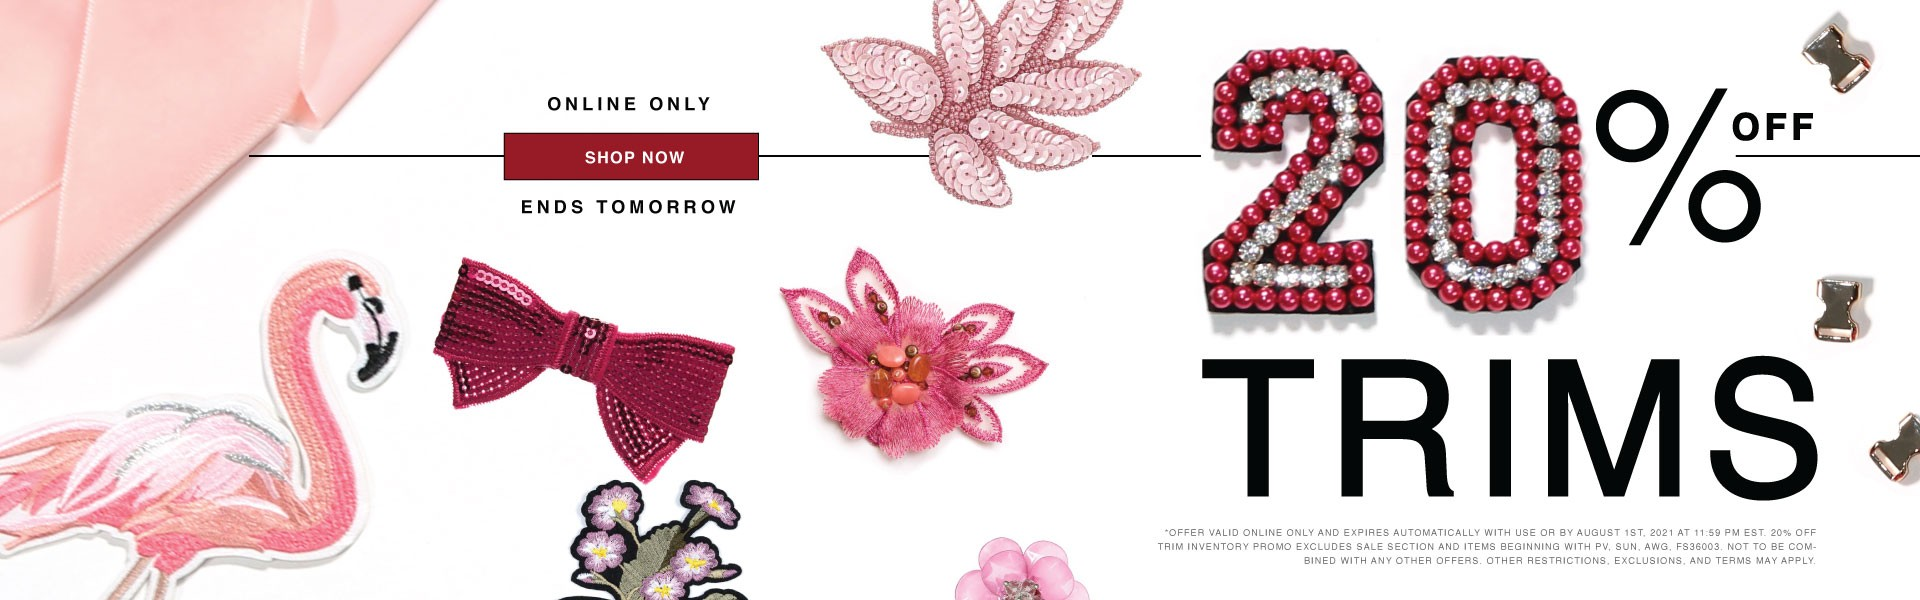 Shop 20% Off Trims - Explore Ribbons, Cords and Chains Now!